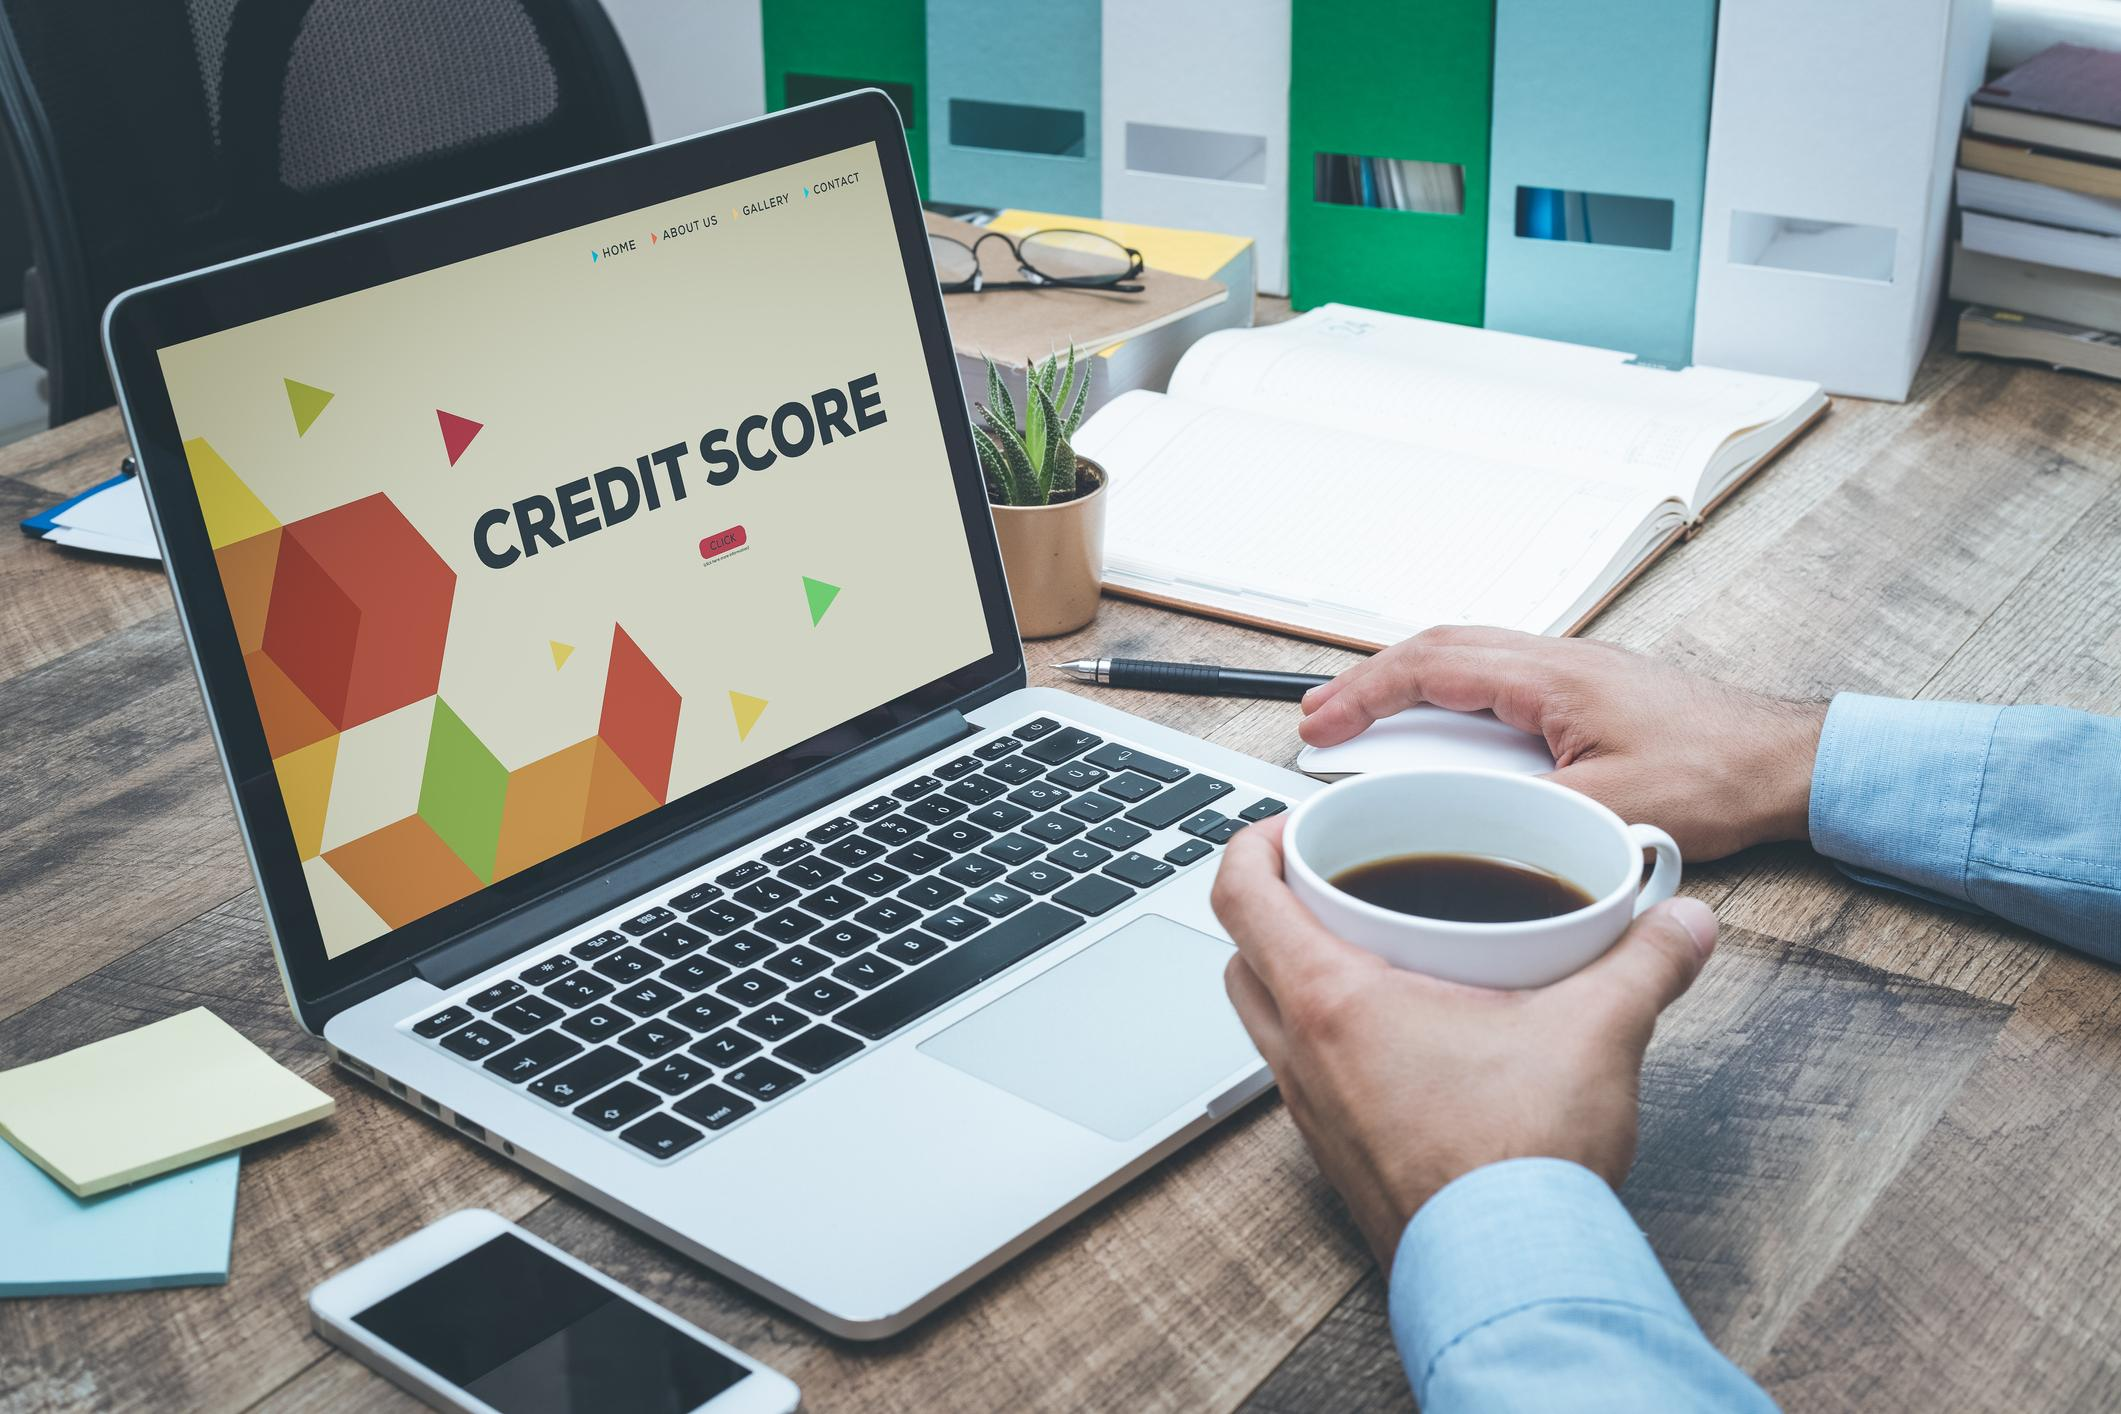 Here's how to check your credit score for free